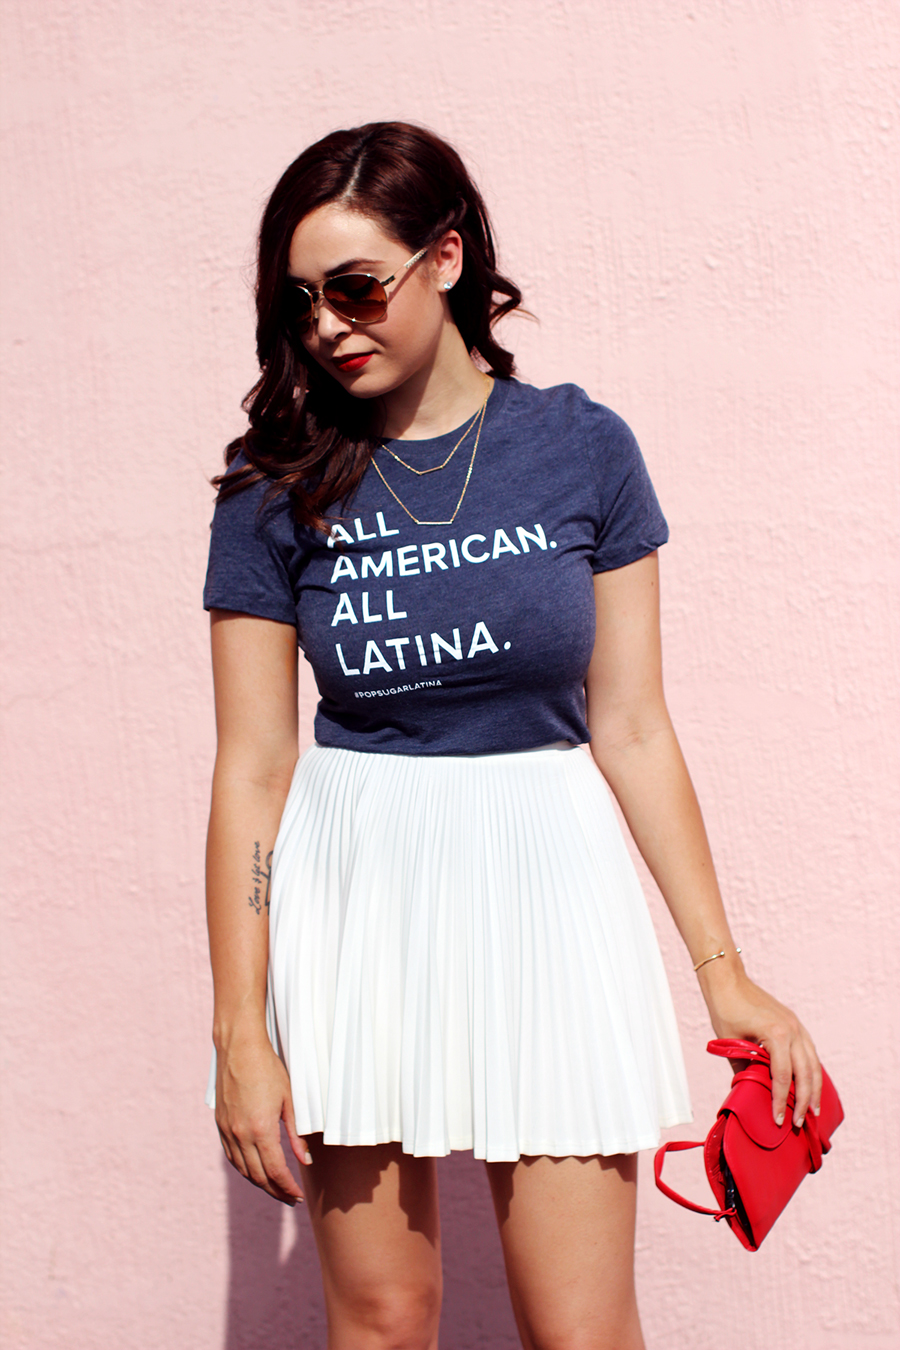 Fixin-to-thrill-latina-austin-fashion-blog-fourth-4th-july-style-holiday-themed-red-white-blue-popsugar-american-6